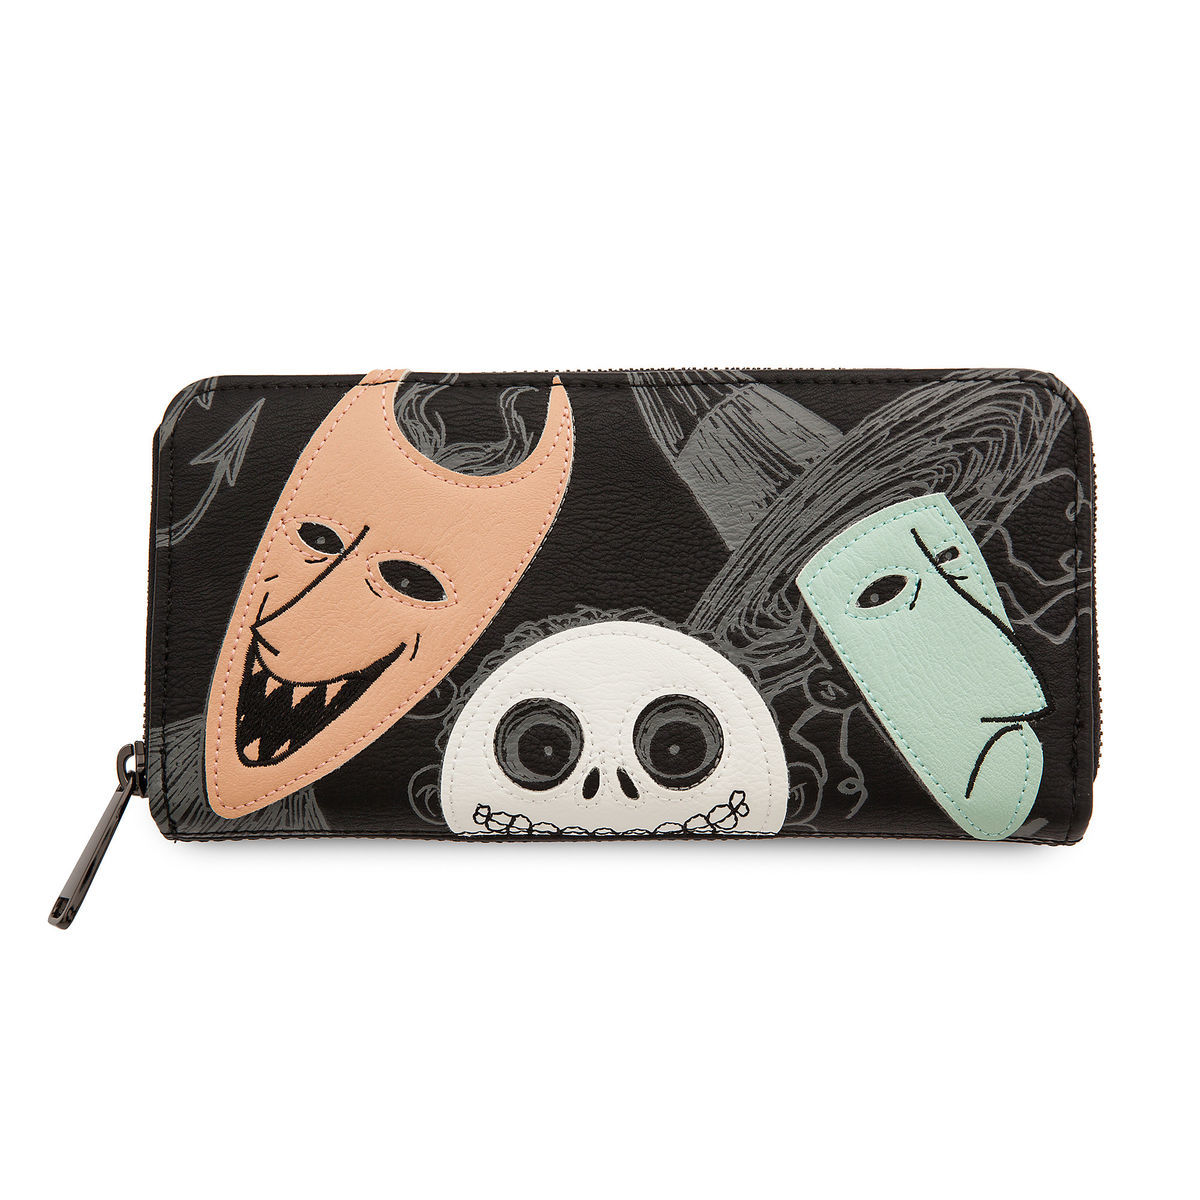 Lock, Shock, and Barrel Fashion Wallet | shopDisney